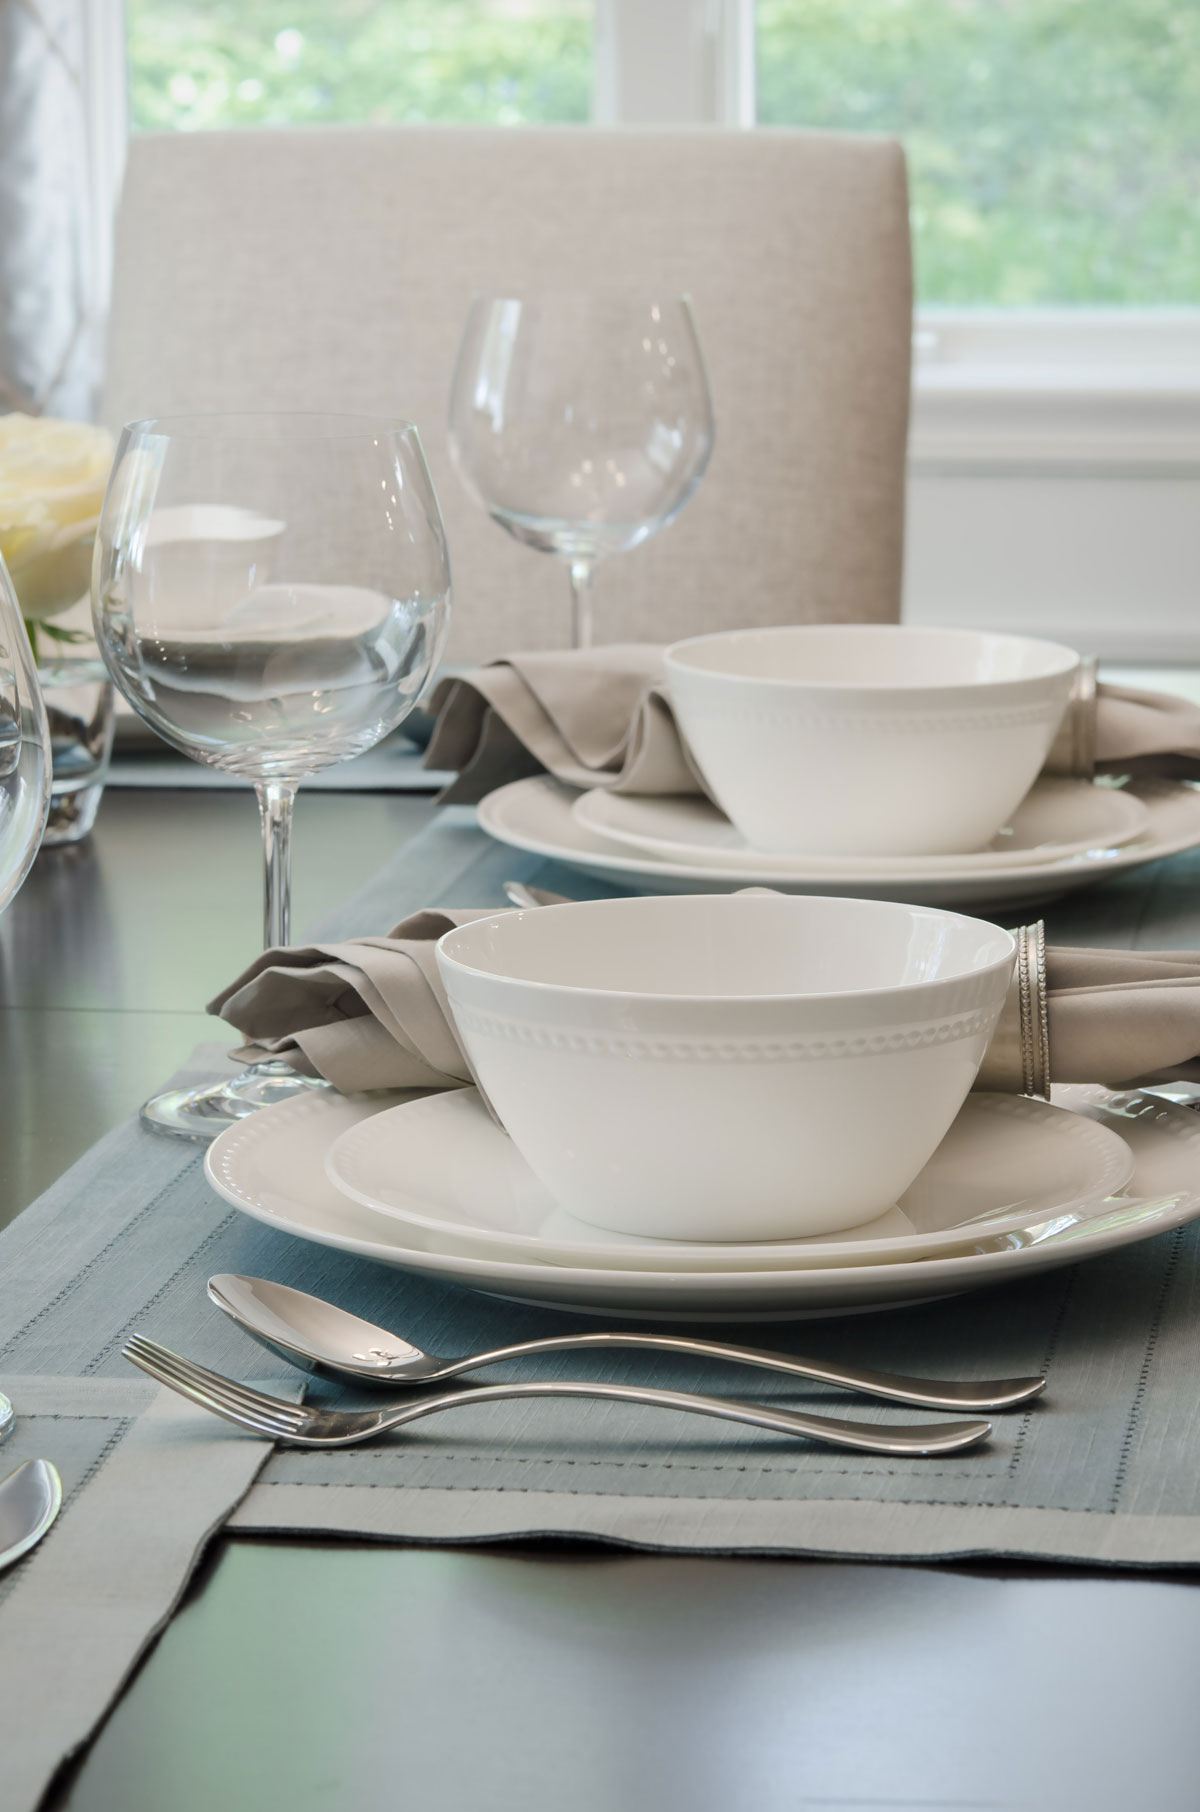 Braintree, MA dining room placesettings by Susan Curtis Interiors